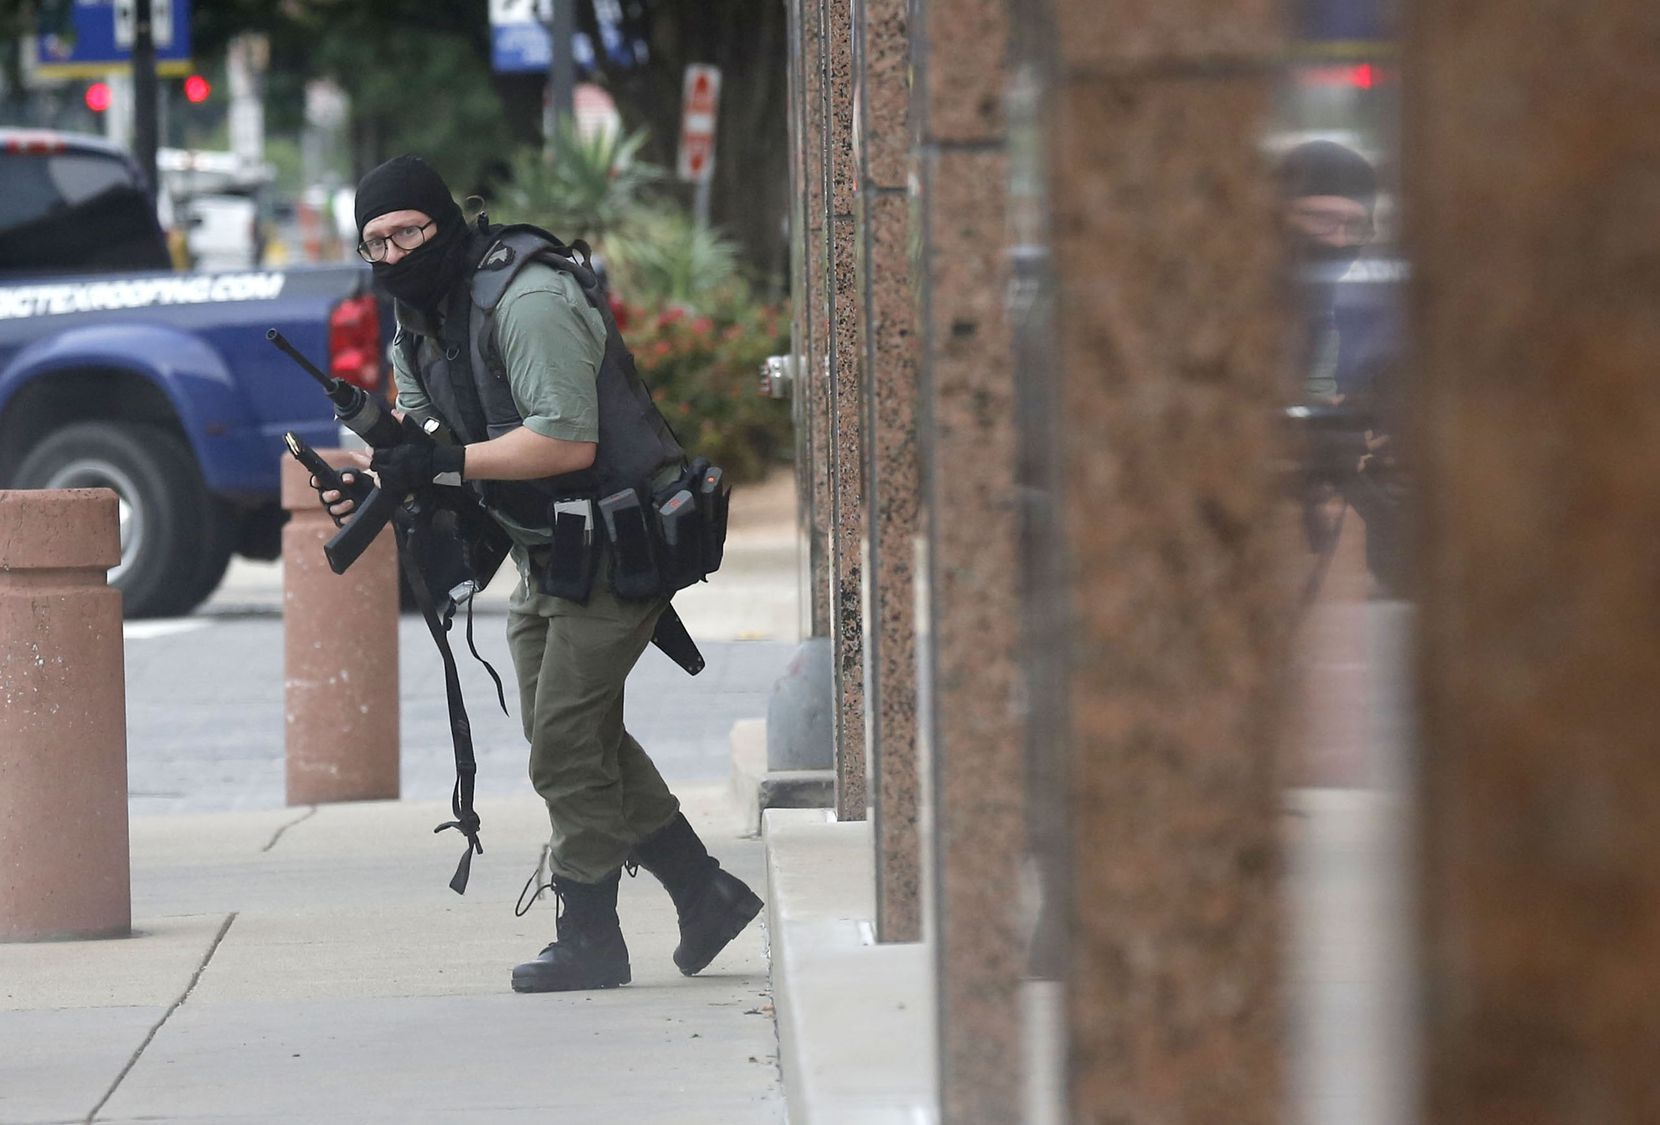 Armed with an AR-15-style rife, Brian Isaack Clyde attacked the Earle Cabell Federal Building in downtown Dallas on June 17.